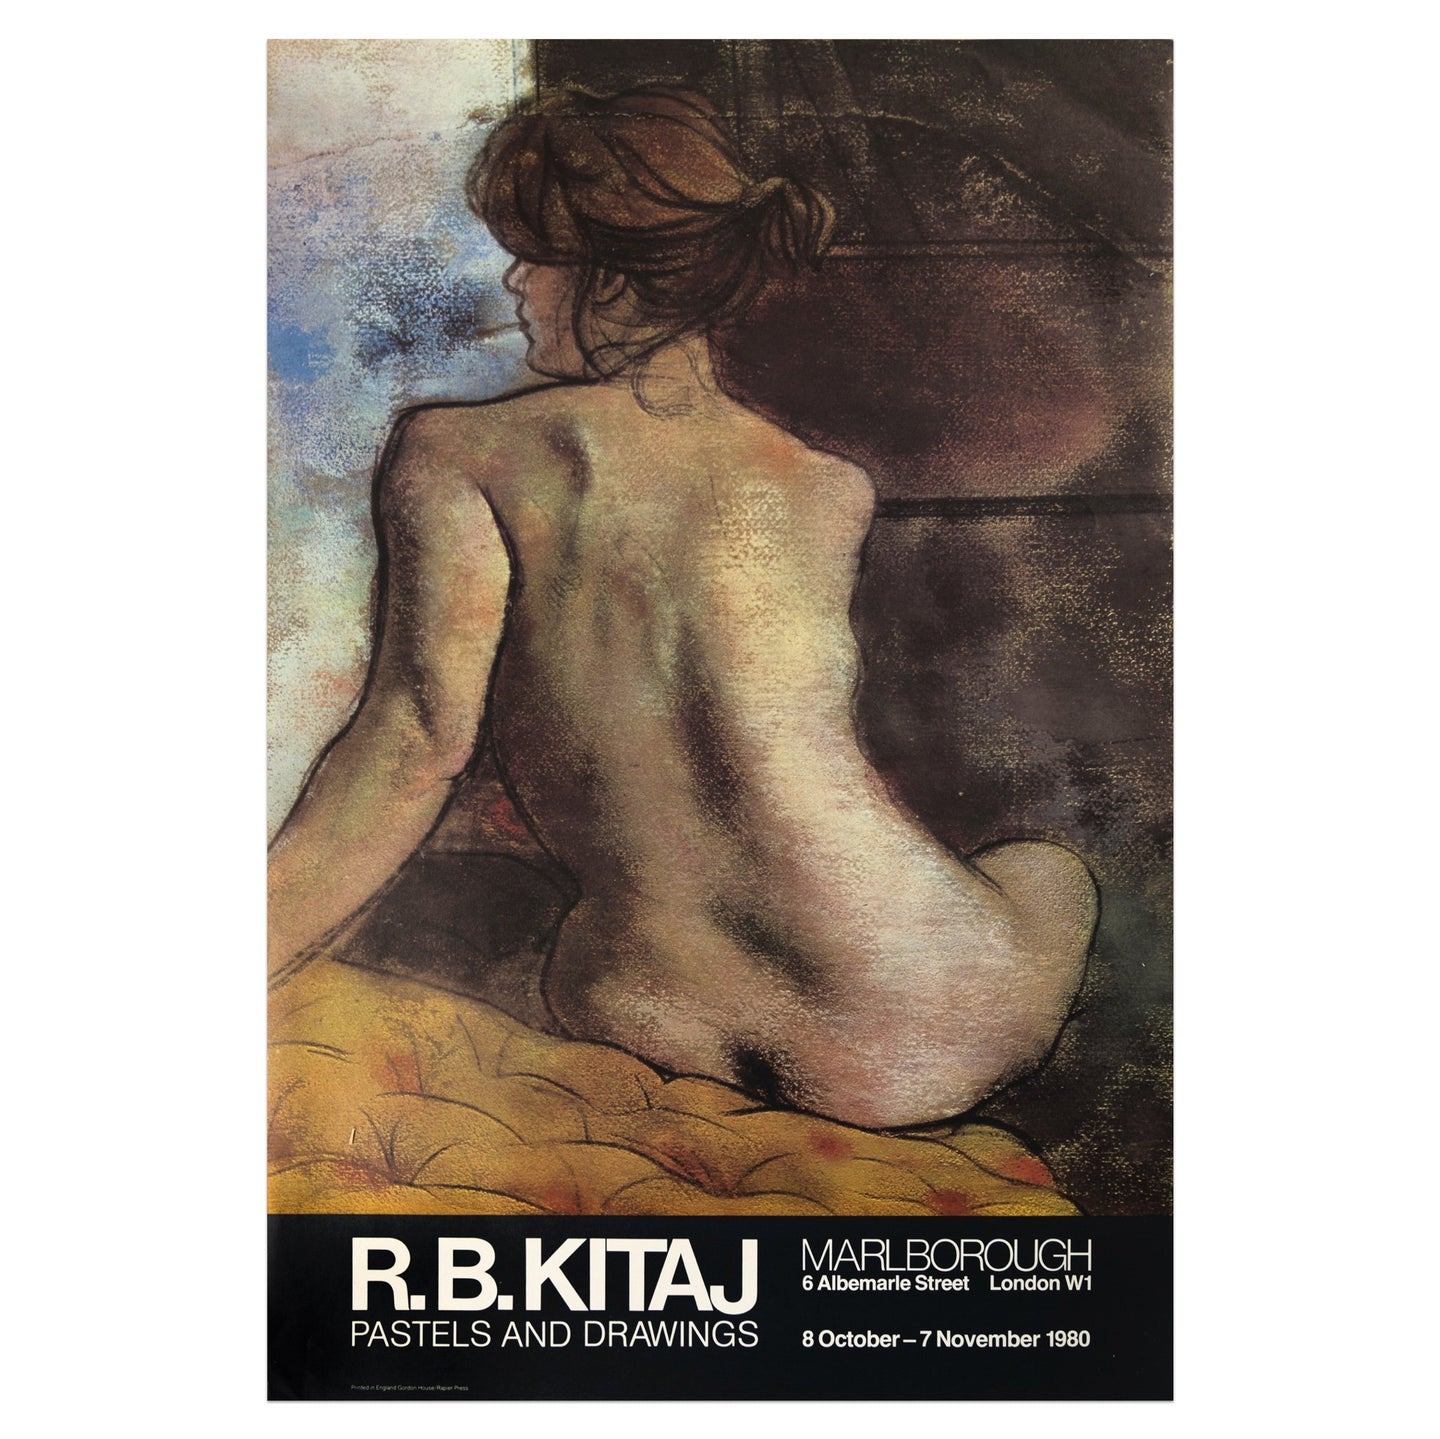 1980 Marlborough London poster for R.B. Kitaj featuring a pastel drawing of the back of a nude woman